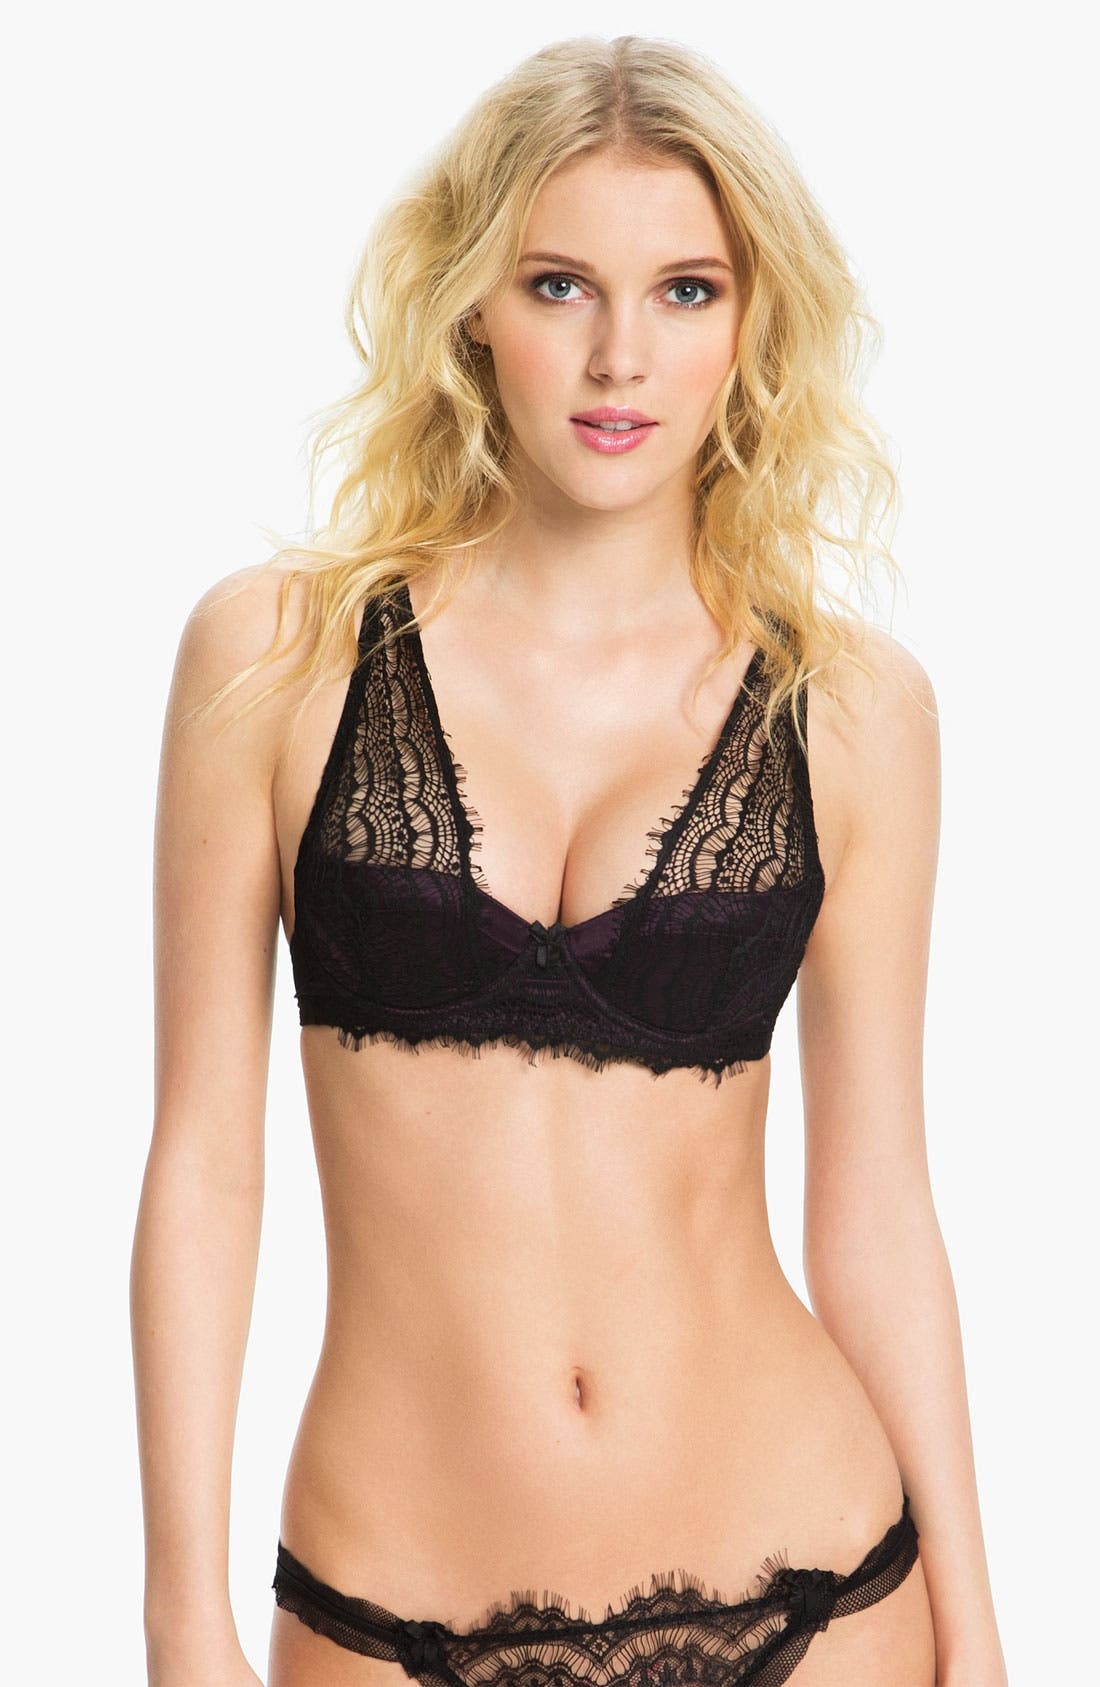 Alternate Image 1 Selected - Mimi Holliday 'Bisou Bisou Berry' Padded Underwire Shoulder Bra